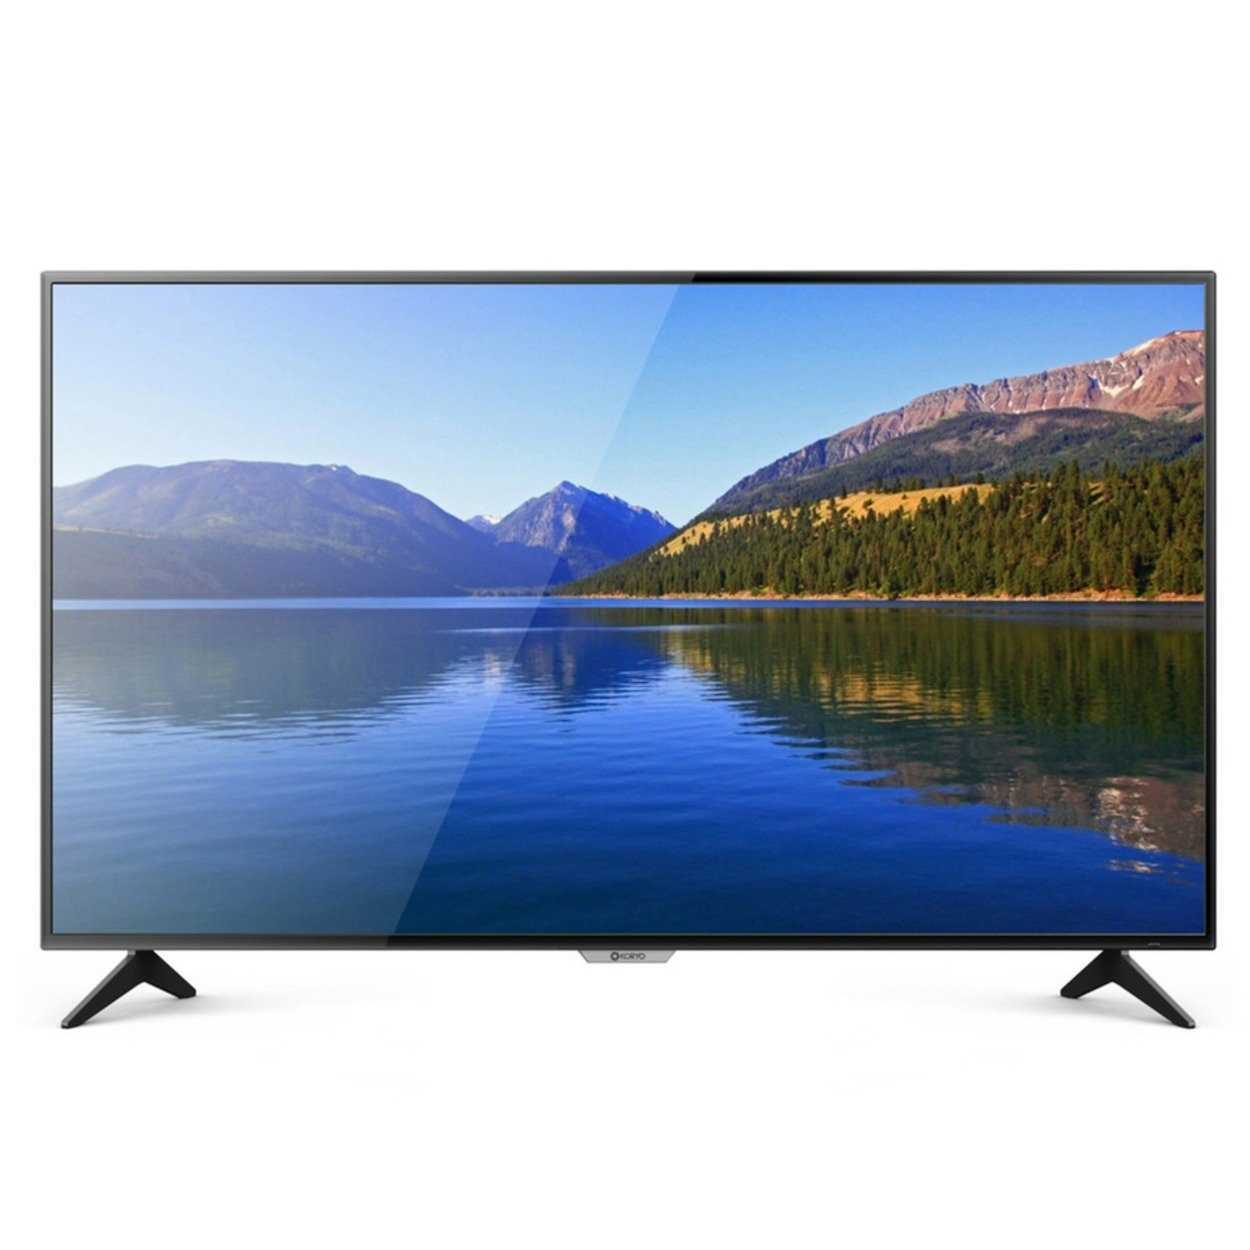 Koryo KLE49EXFN83 49 Inch Full HD LED Television